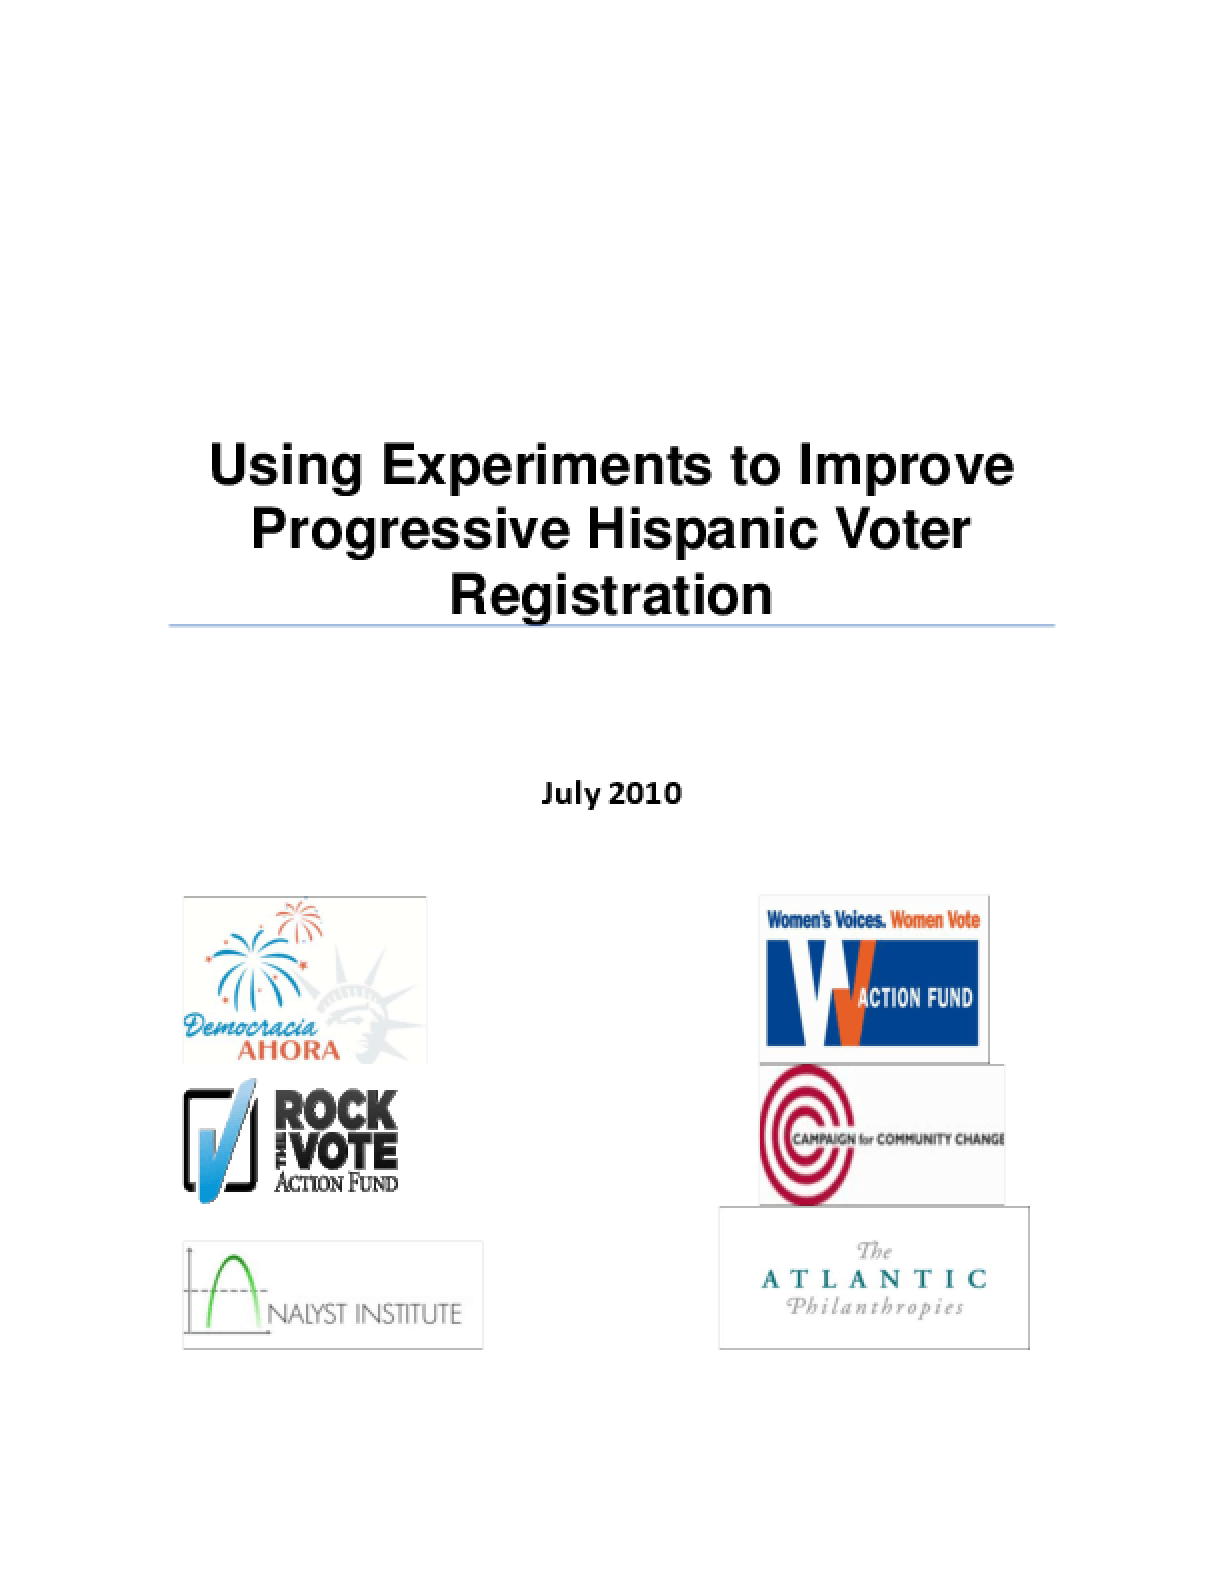 Using Experiments to Improve Progressive Hispanic Voter Registration